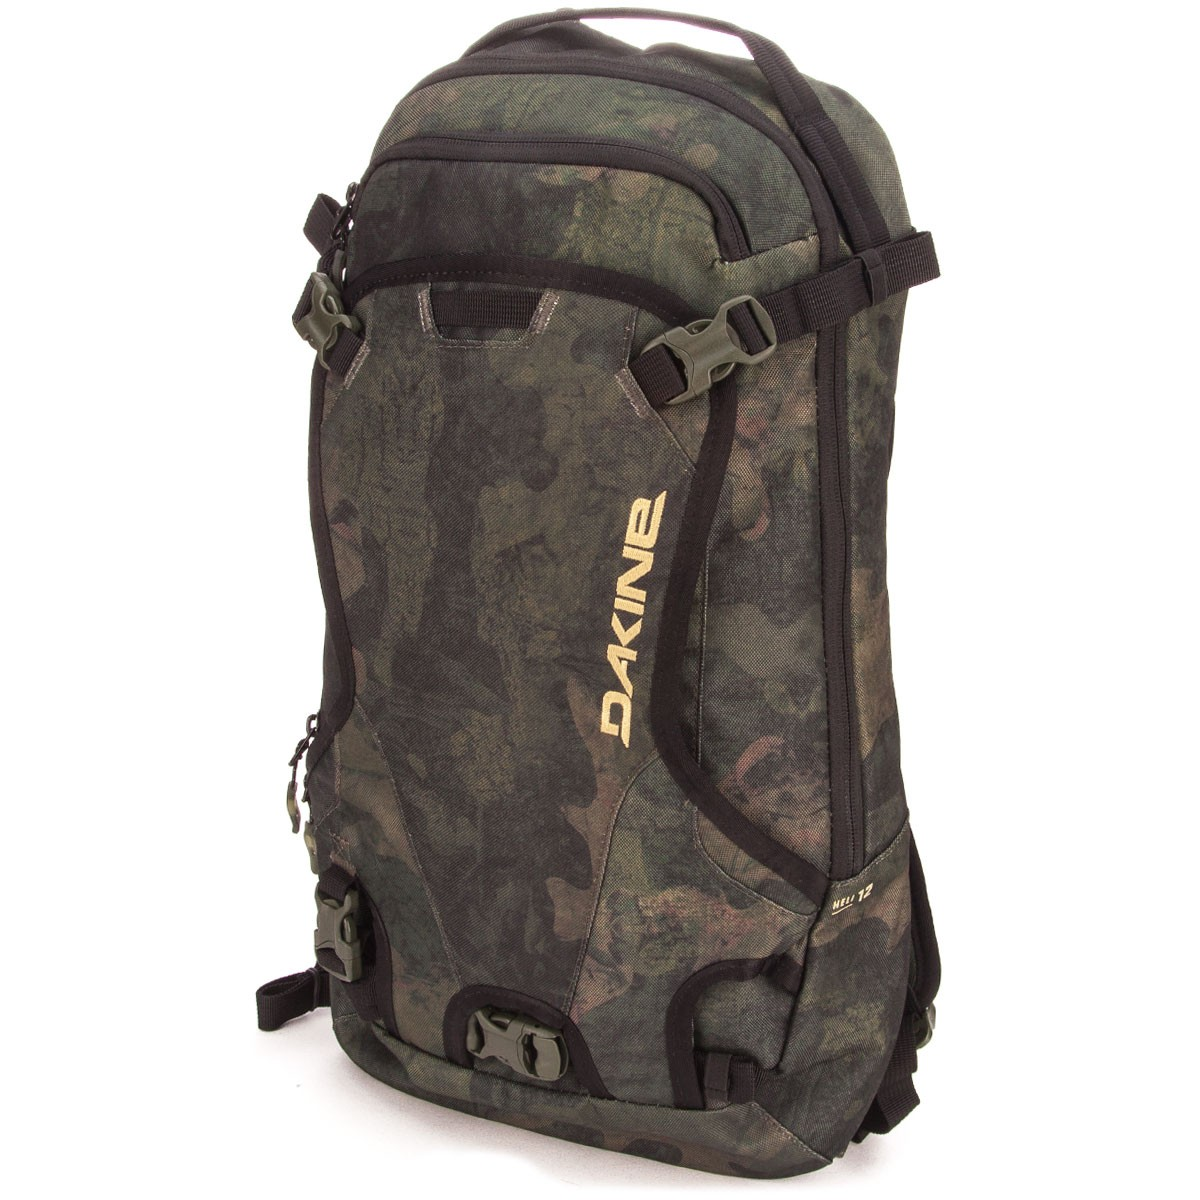 Heli Pack 12L Backpack - Peat Camo